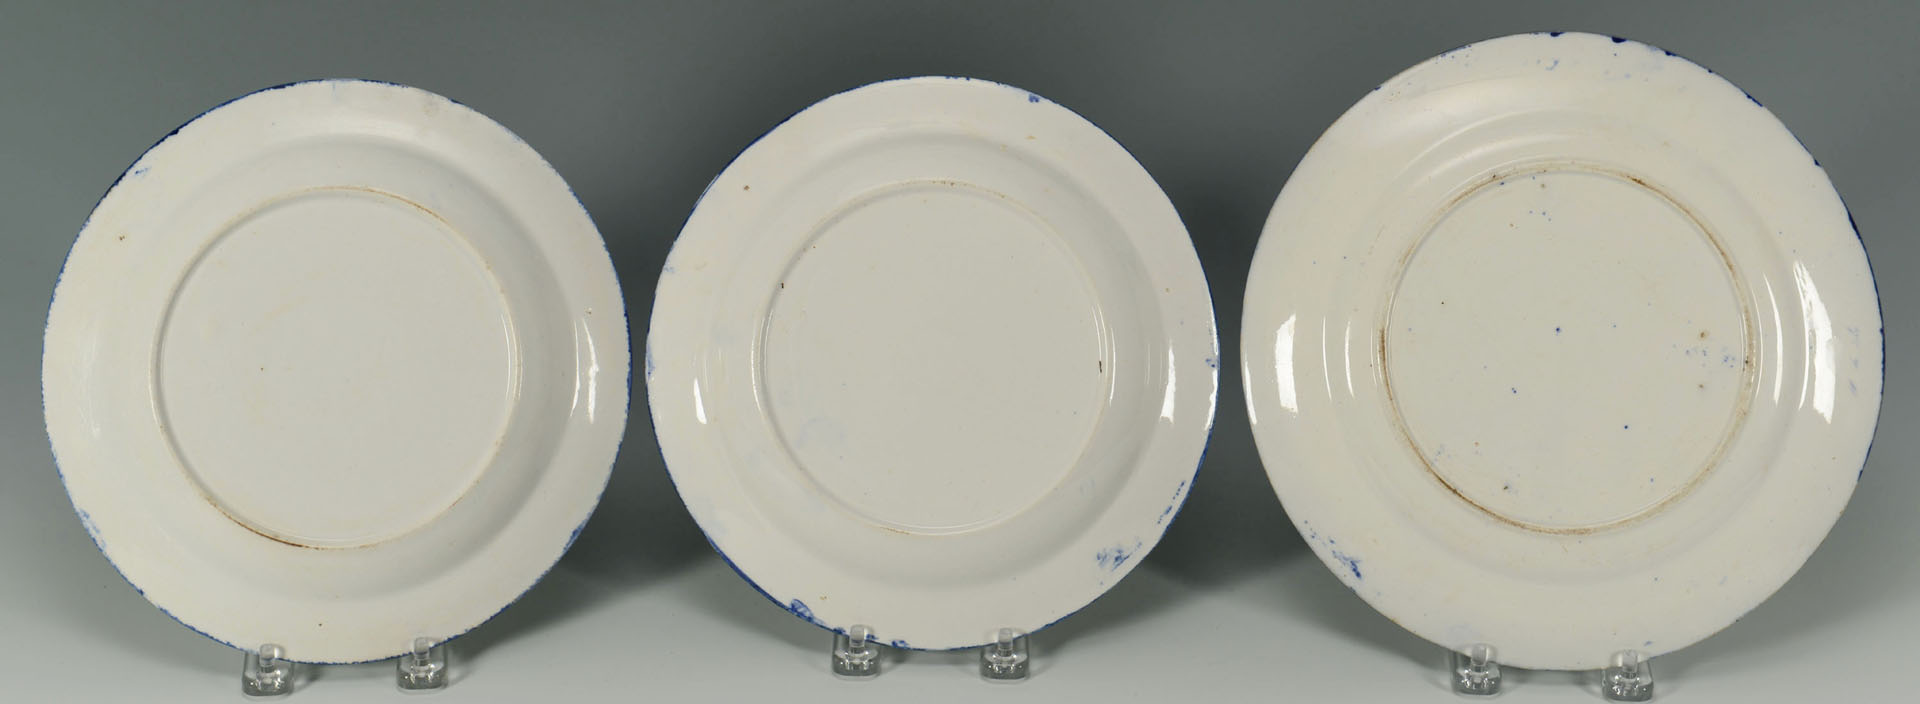 9 Spatterware and spongware related items